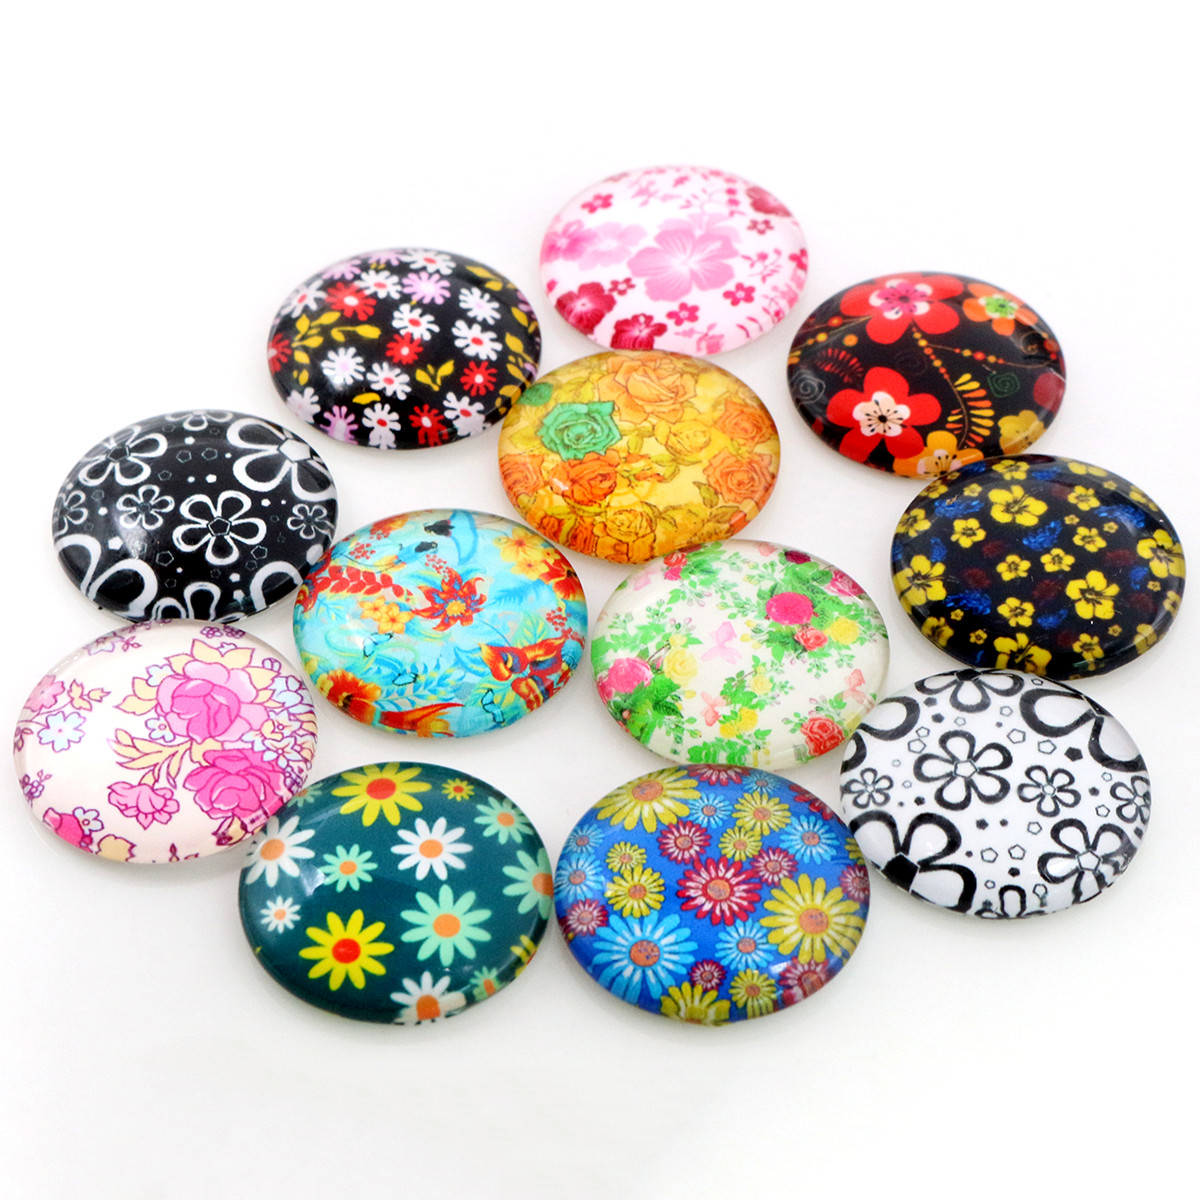 8mm-25mm Flower Print Photo Glass Cabochons Mixed Color Cabochons For Bracelet Earrings Necklace Bases Settings